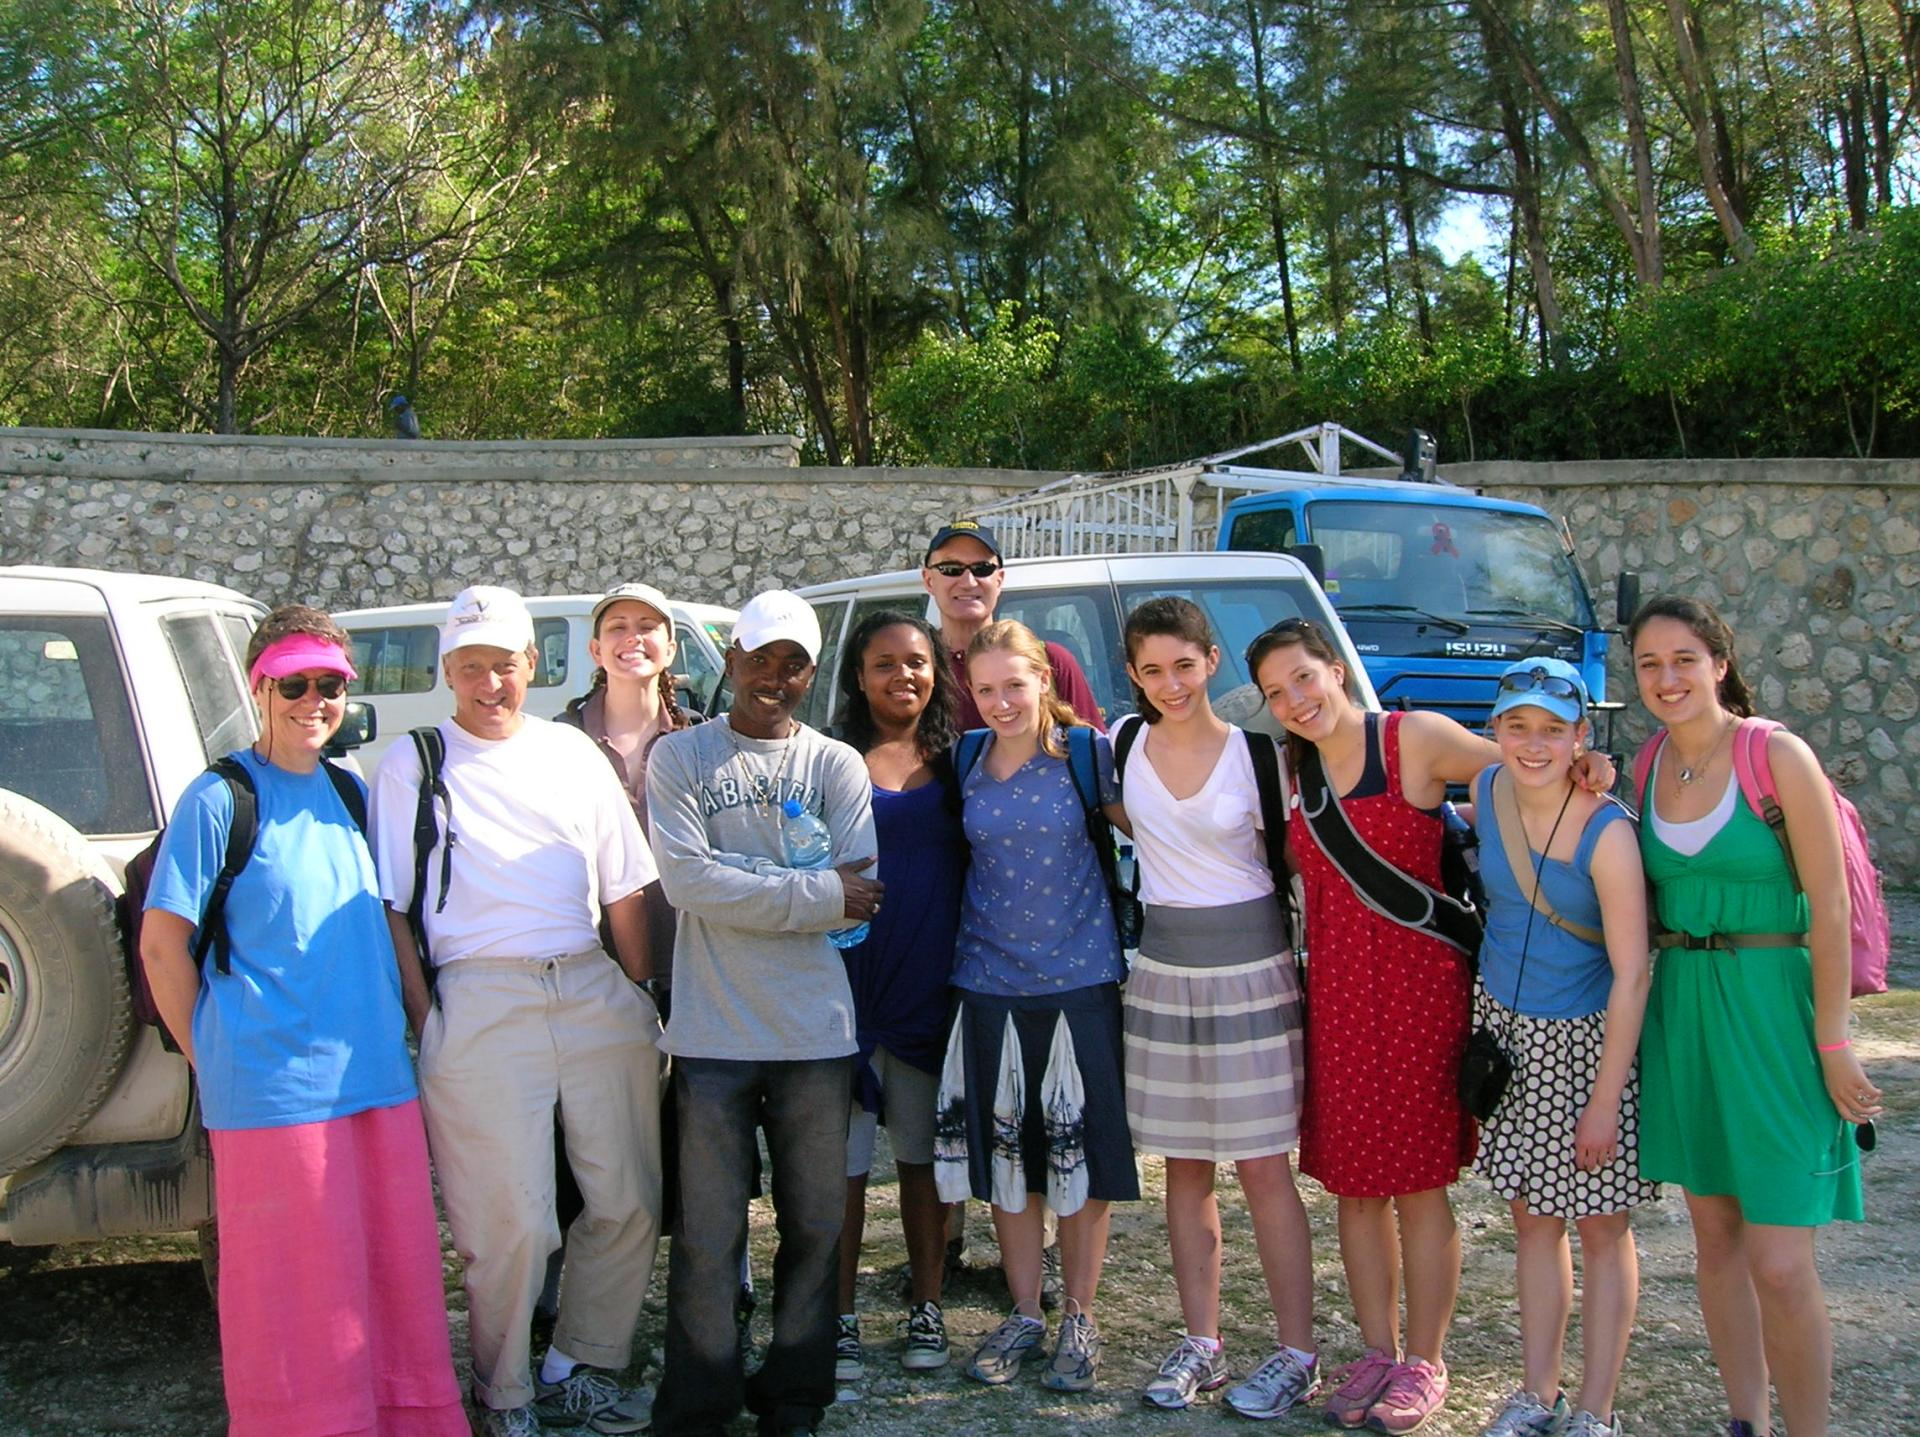 The group before they set off for their 2 hour hike to St. Paul's School.